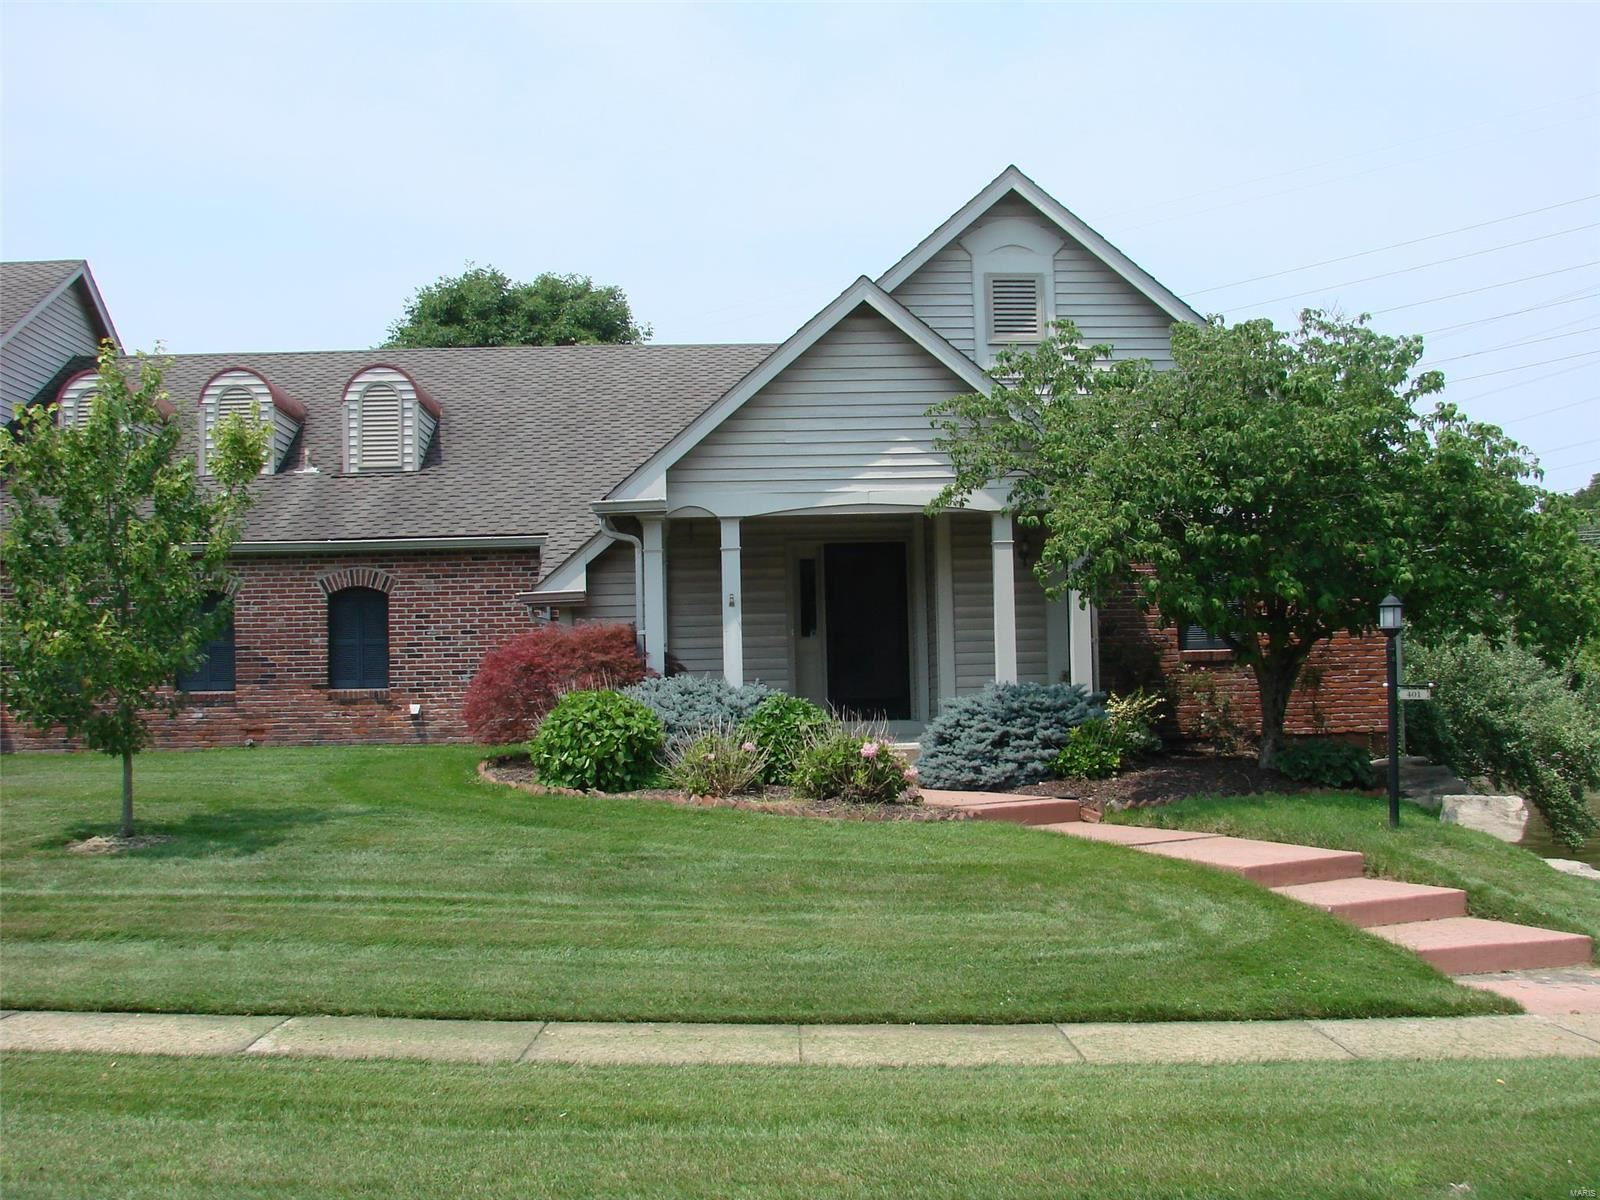 401 Conway Meadows Drive, Chesterfield, MO 63017 - MLS#: 21049162